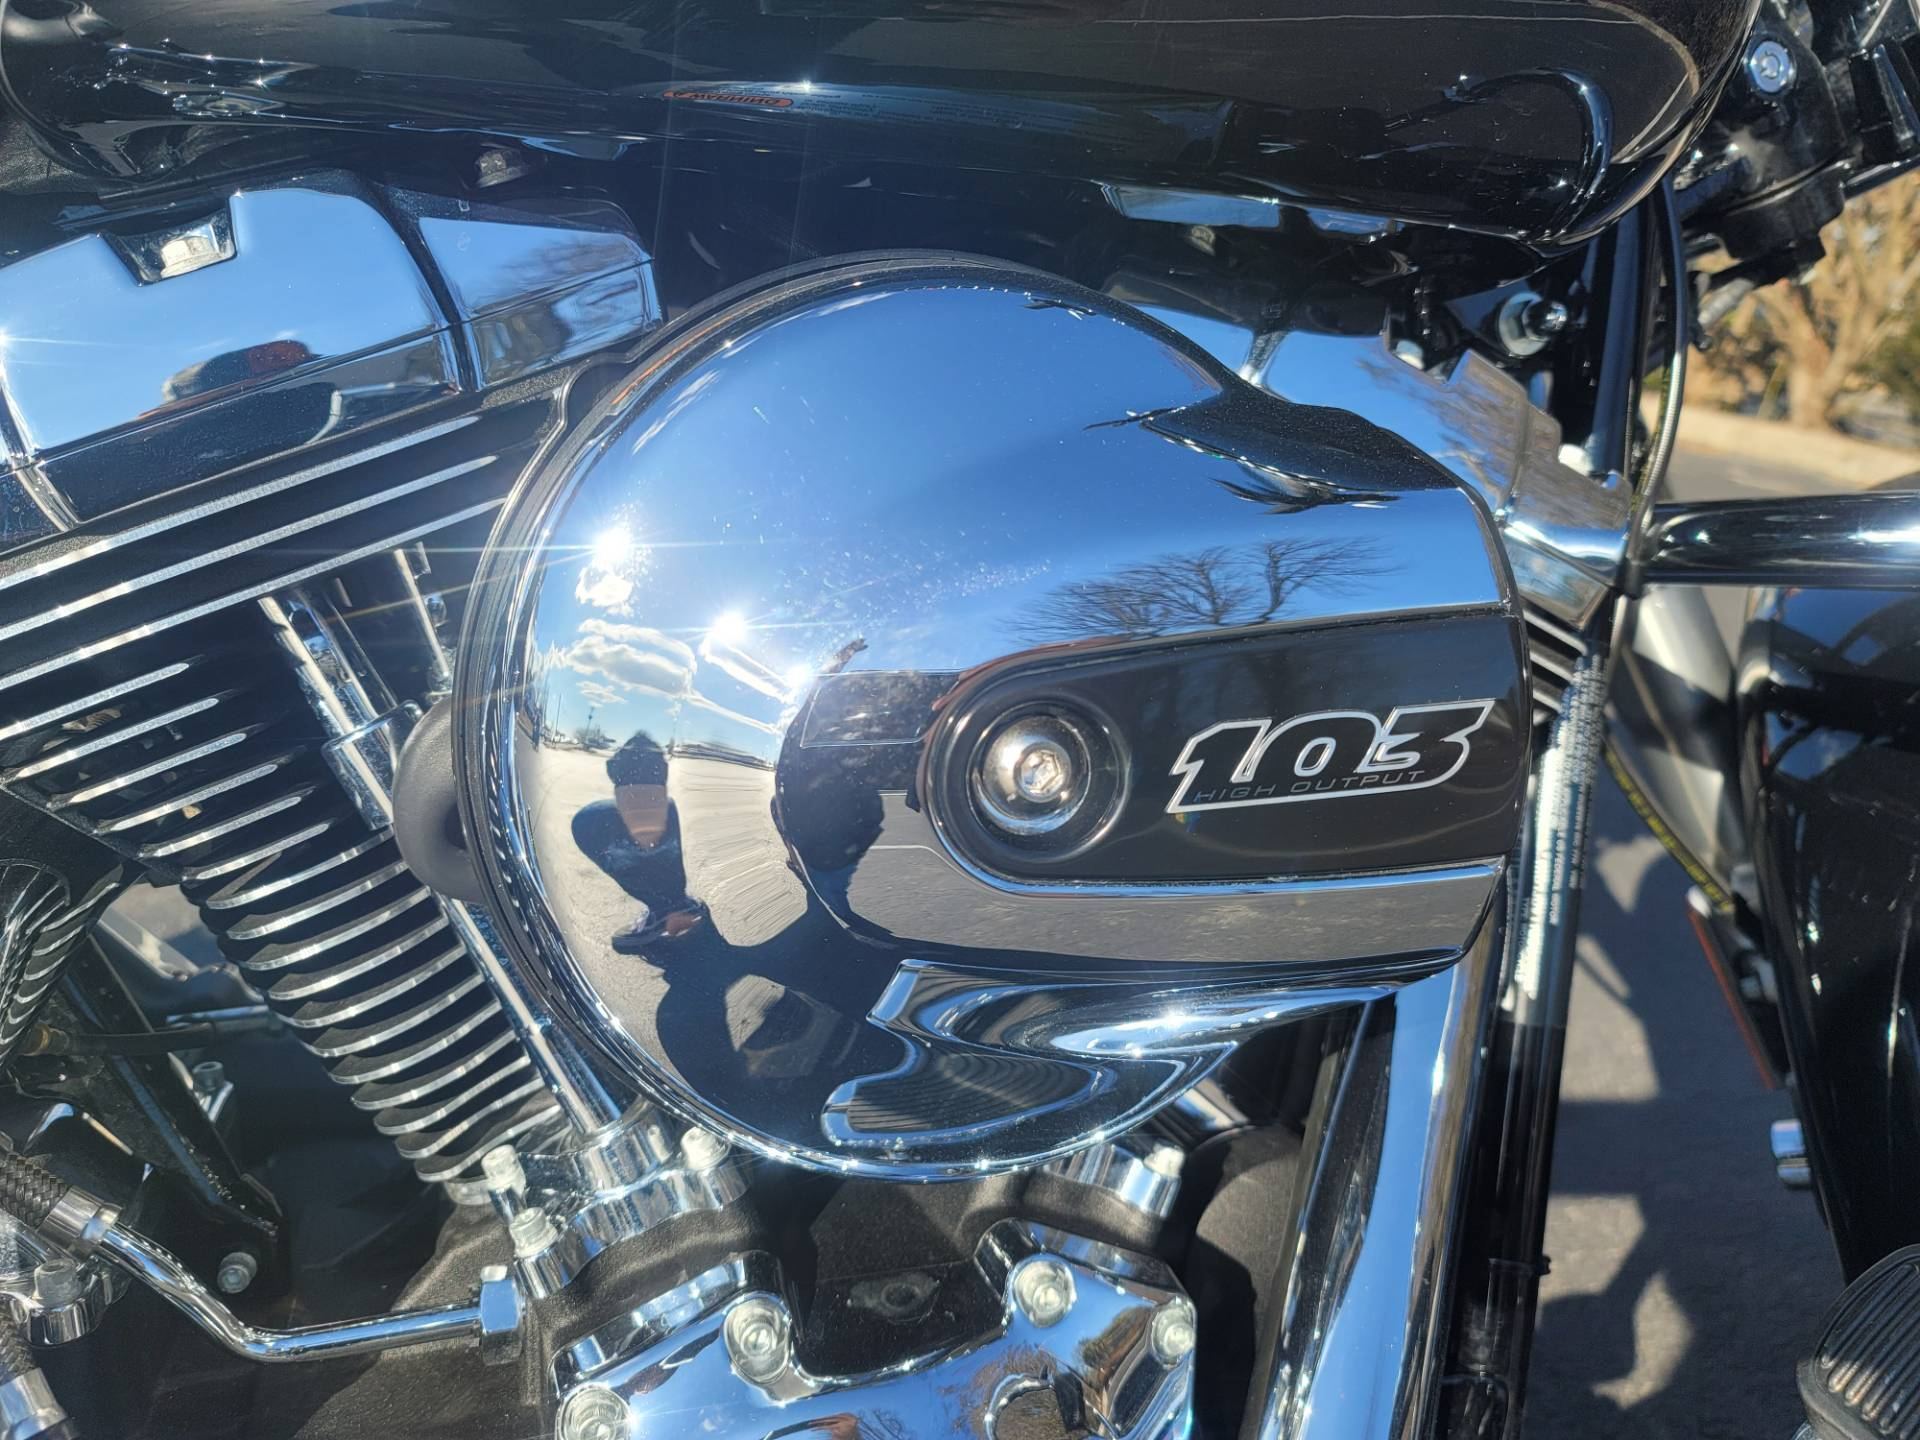 2016 Harley-Davidson Softail® Deluxe in Lynchburg, Virginia - Photo 22